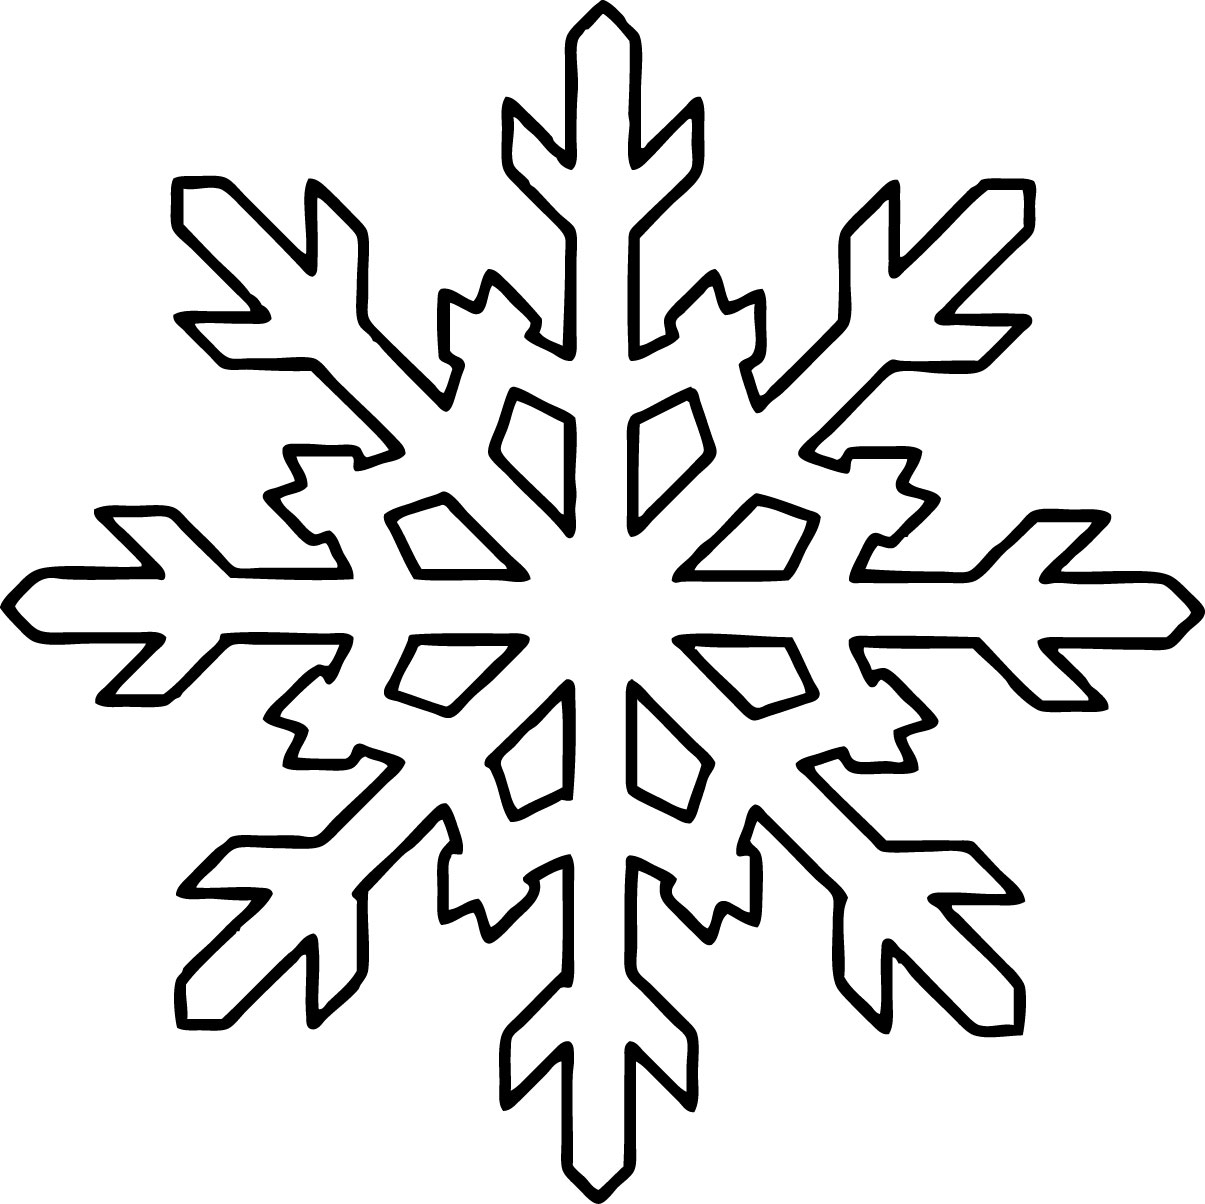 snowflake pictures to color get this snowflake coloring pages for kindergarten 31675 to color pictures snowflake